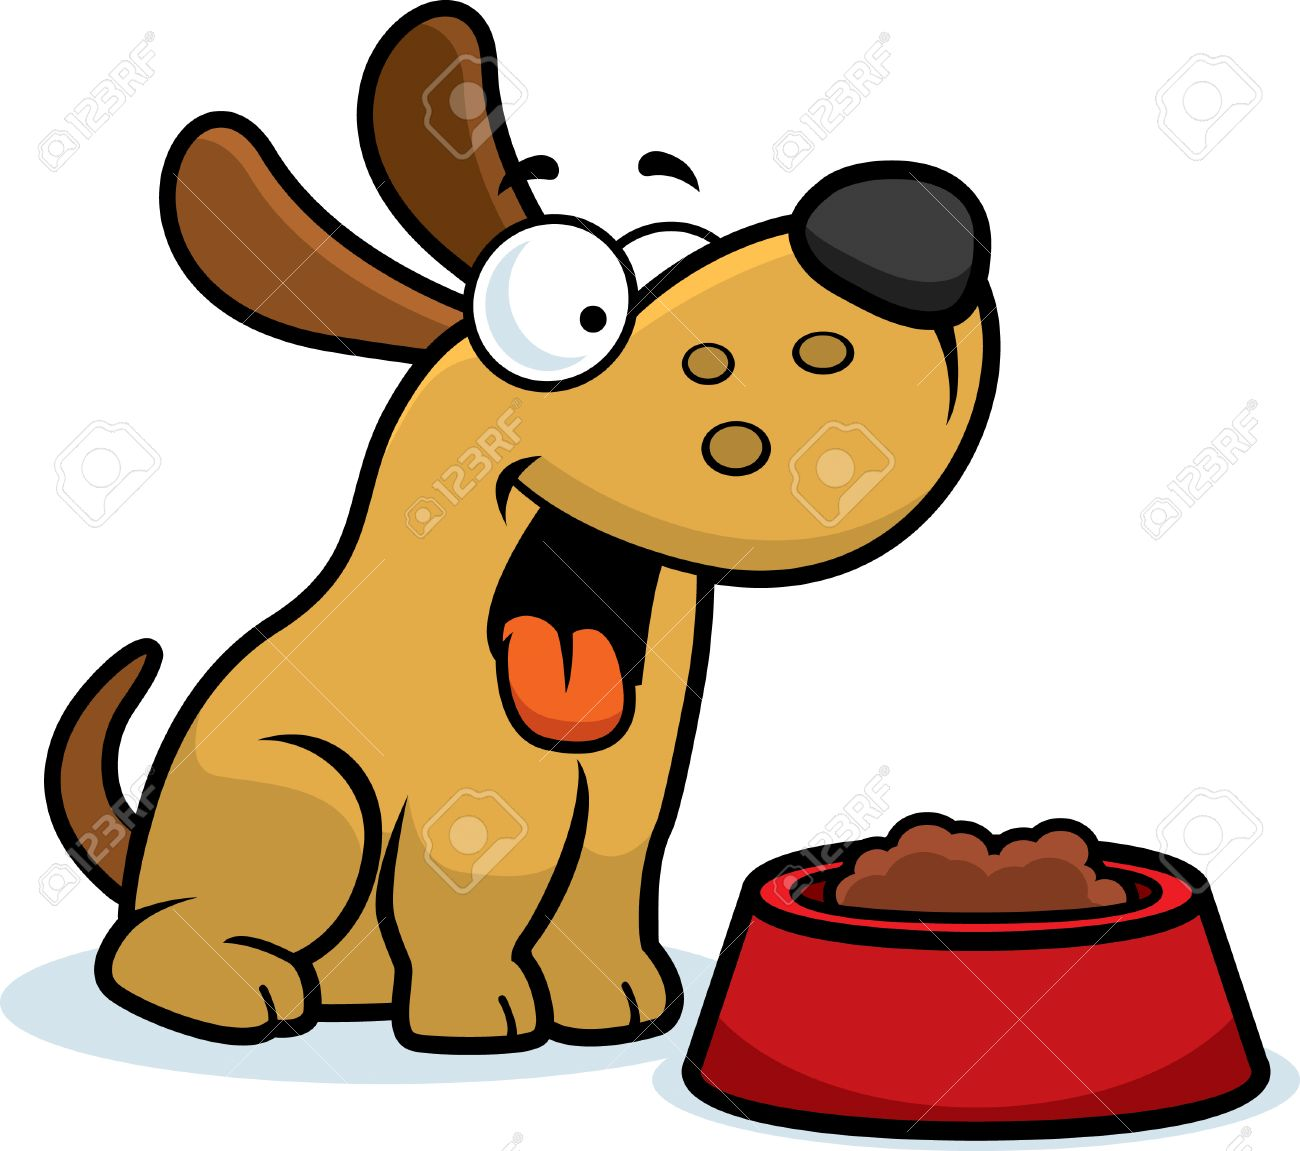 A cartoon illustration of a dog with a bowl of food..